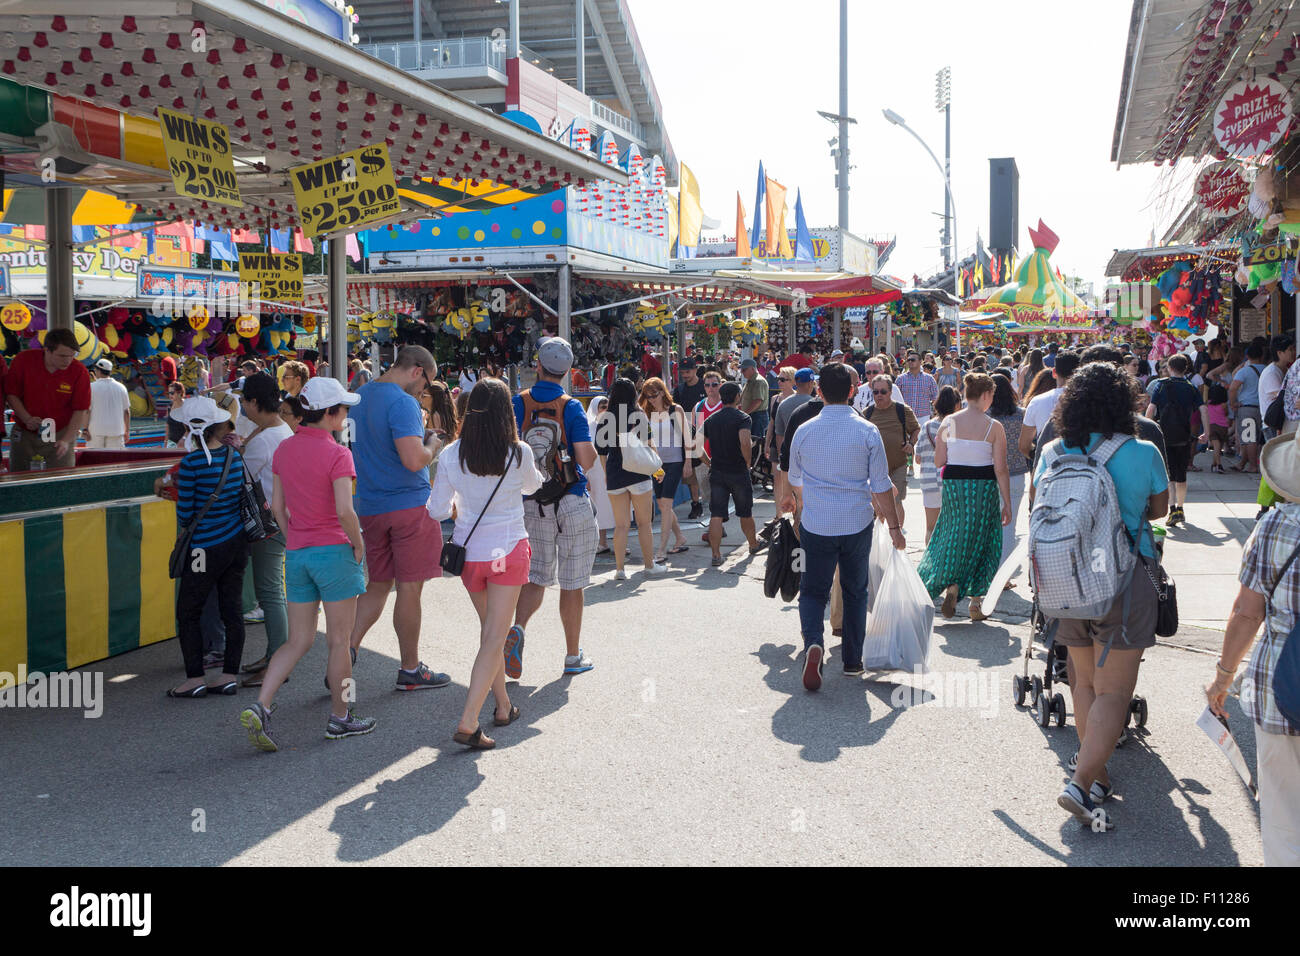 people-walking-through-the-midway-at-the-canadian-national-exhibition-F11286.jpg